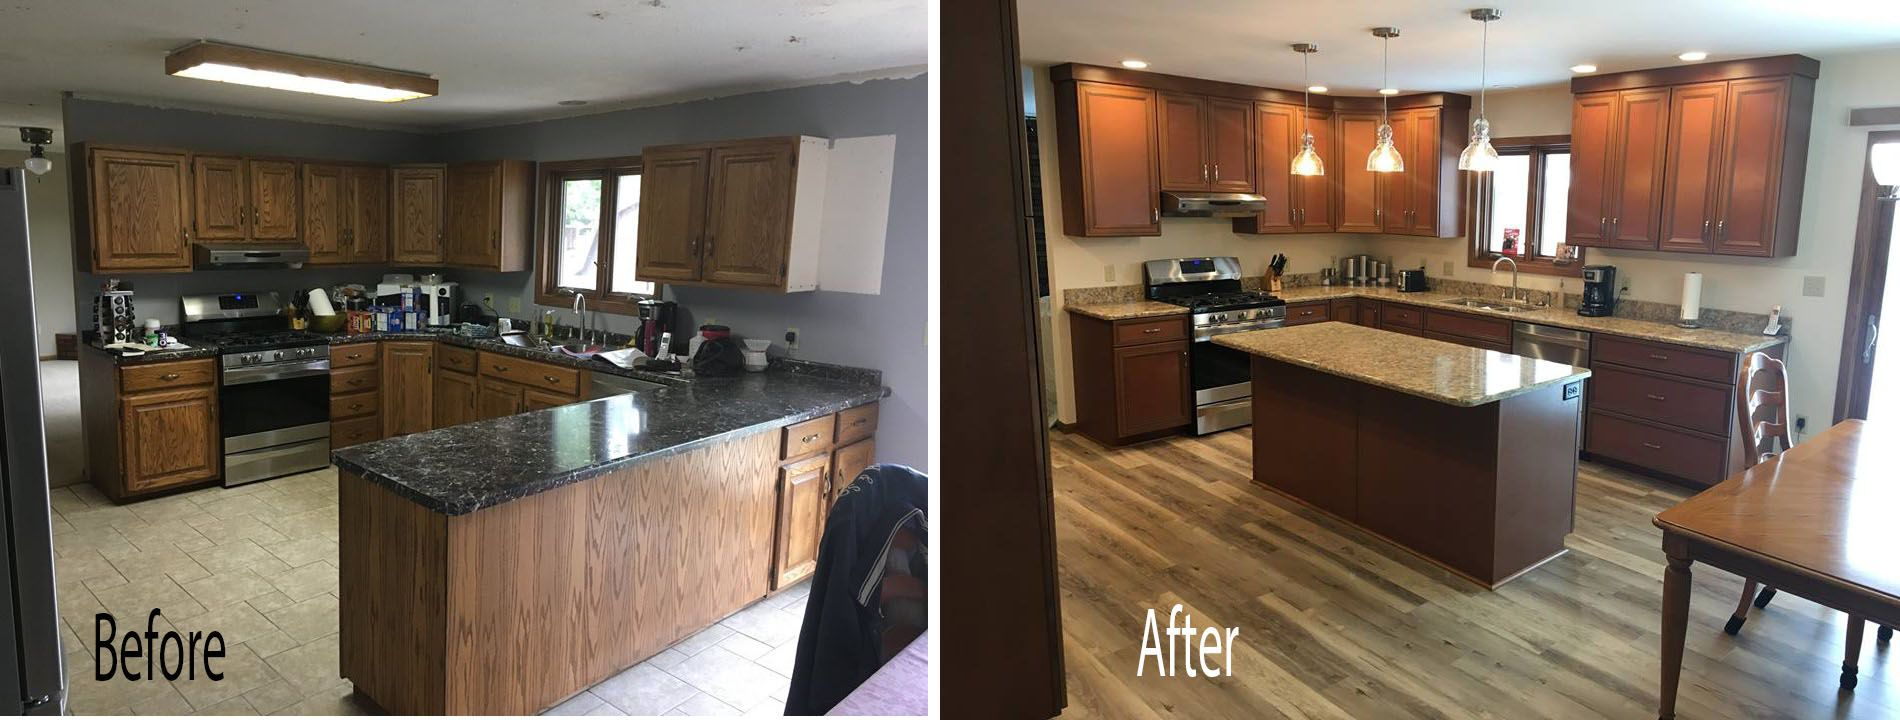 Traditional Kitchen Update With New Cabinets And Quartz Countertop Refacing Kitchen Cabinets Home Kitchens Updated Kitchen